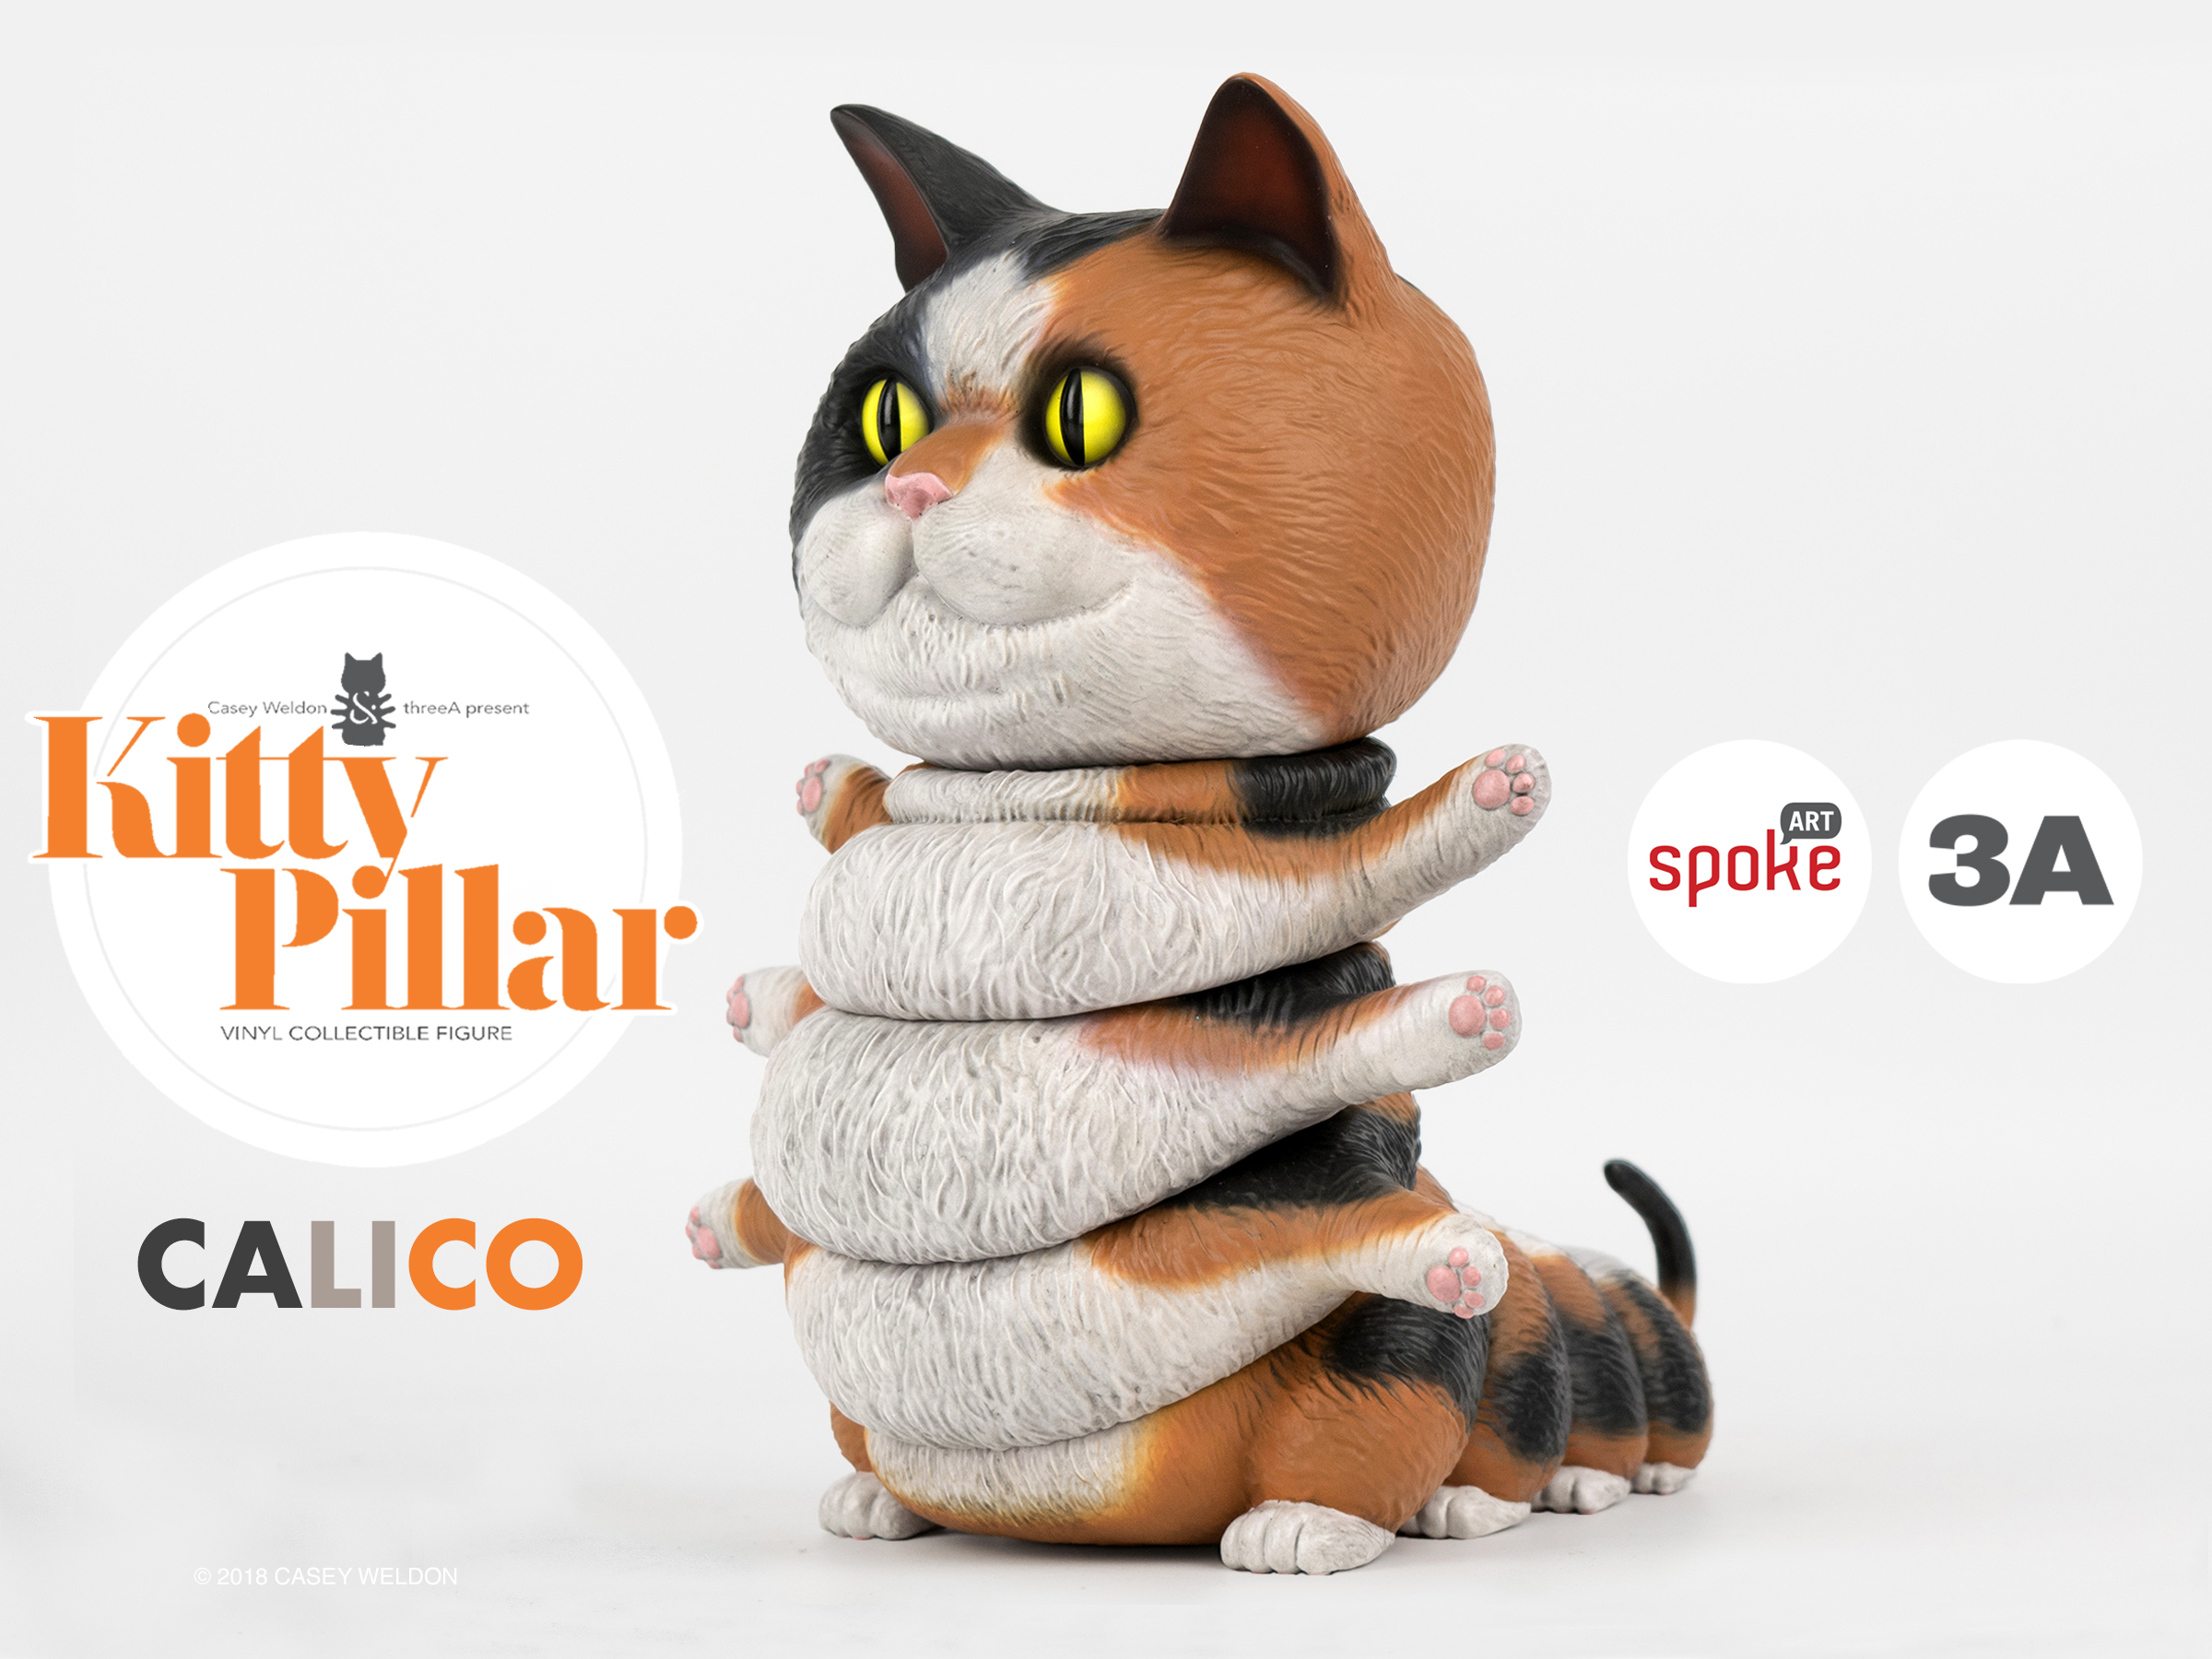 CALICO KITTYPILLAR - Spoke Art Gallery Exclusive!